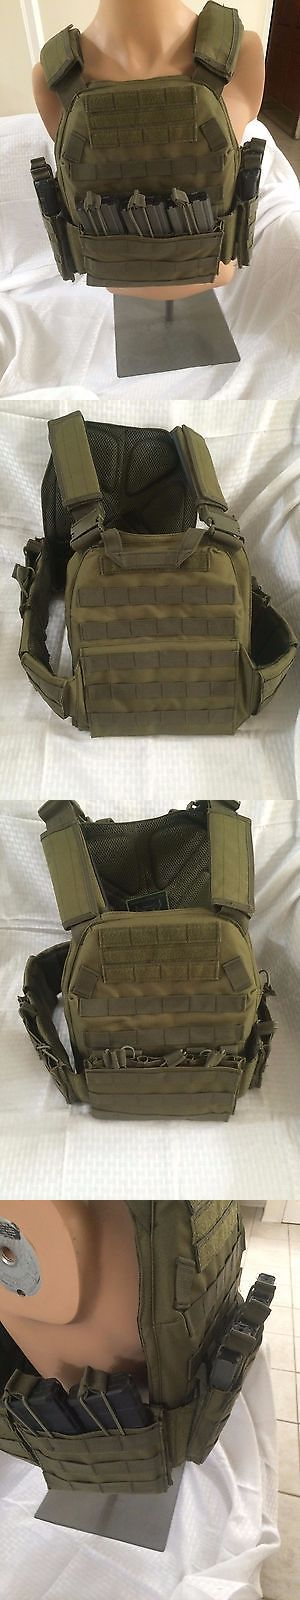 Chest Rigs and Tactical Vests 177891: Trident Tactical Solutions Plate Carrier Od Ranger Green -> BUY IT NOW ONLY: $120 on eBay!